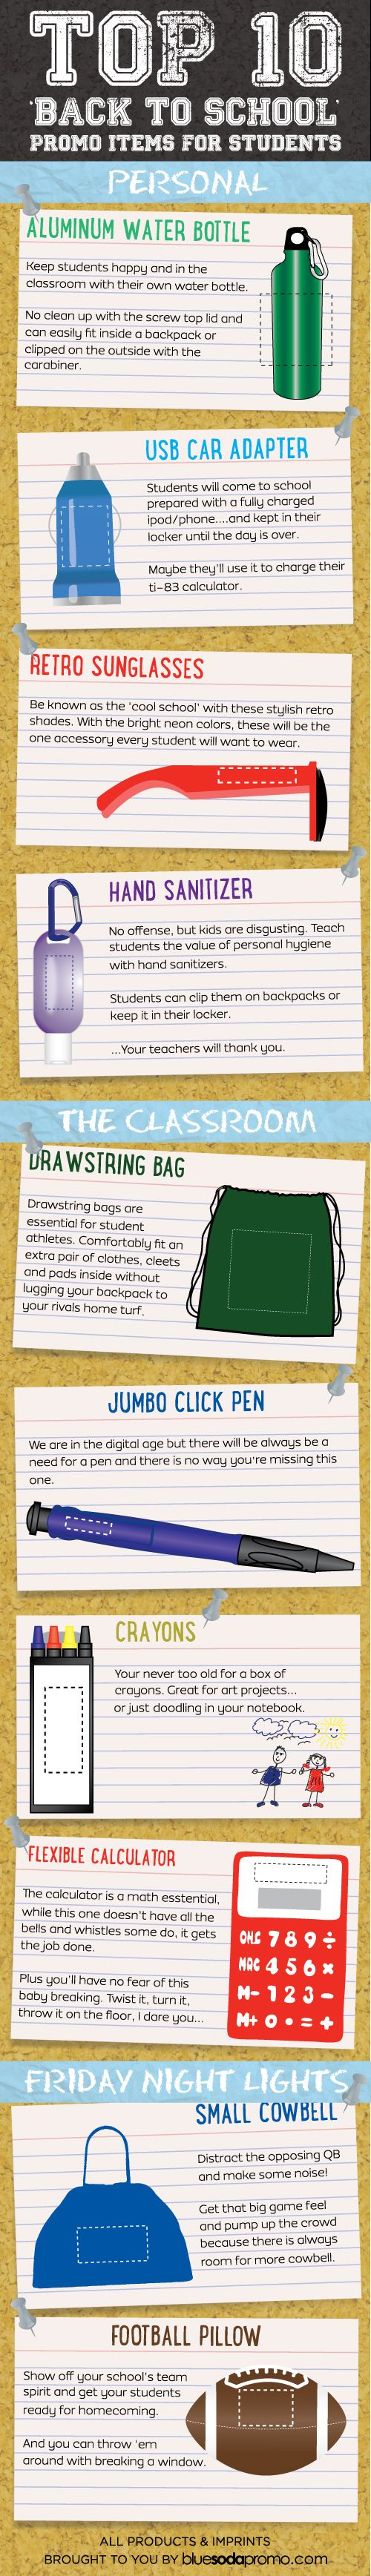 Great 'Back to School' #promoproducts ideas for your business to give to students